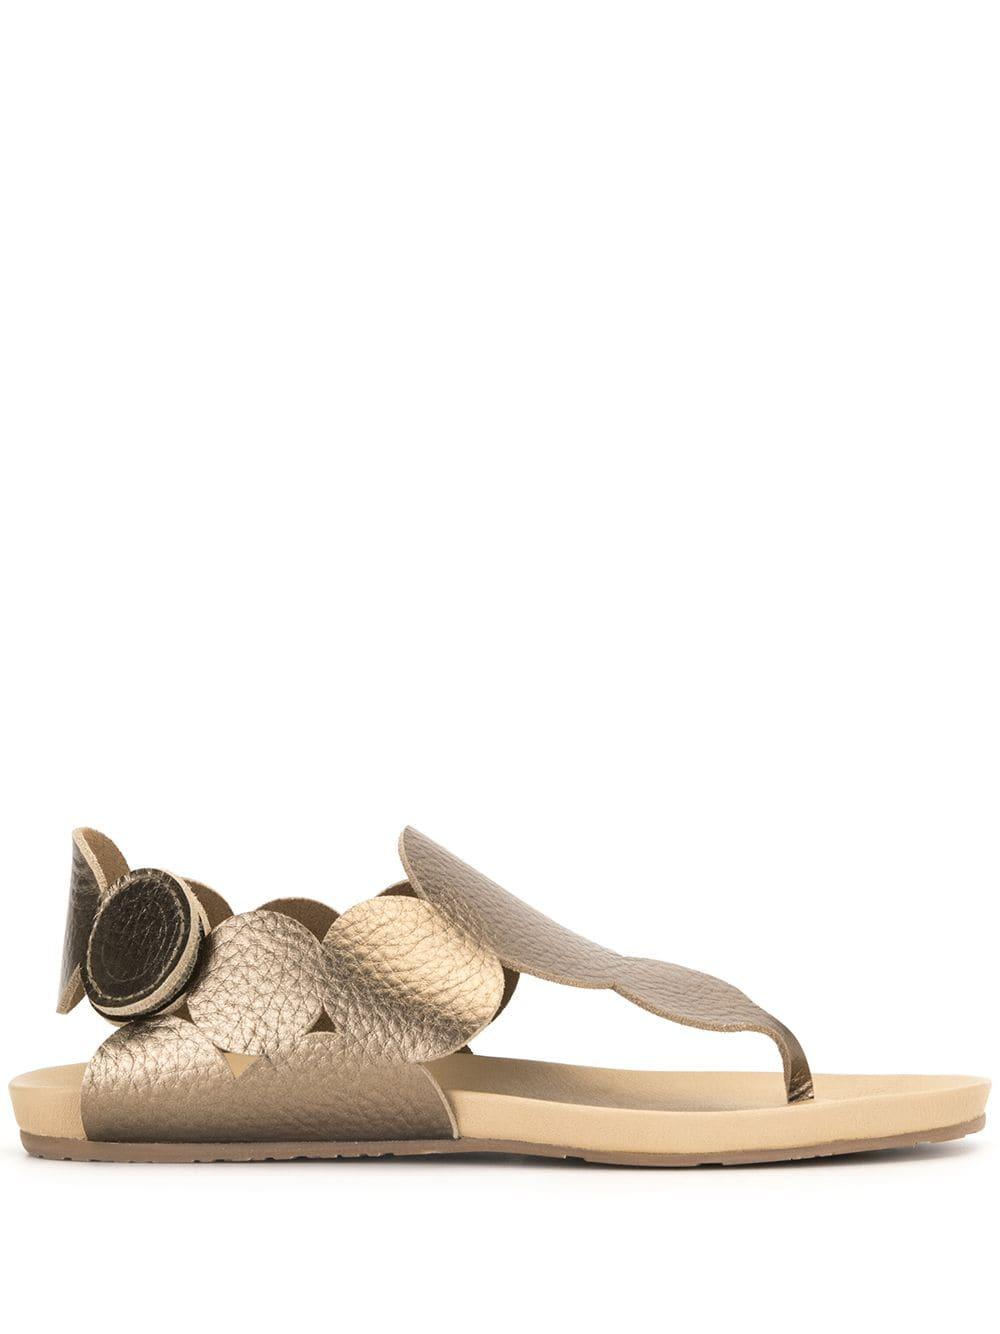 Jamee Metallic Sandal